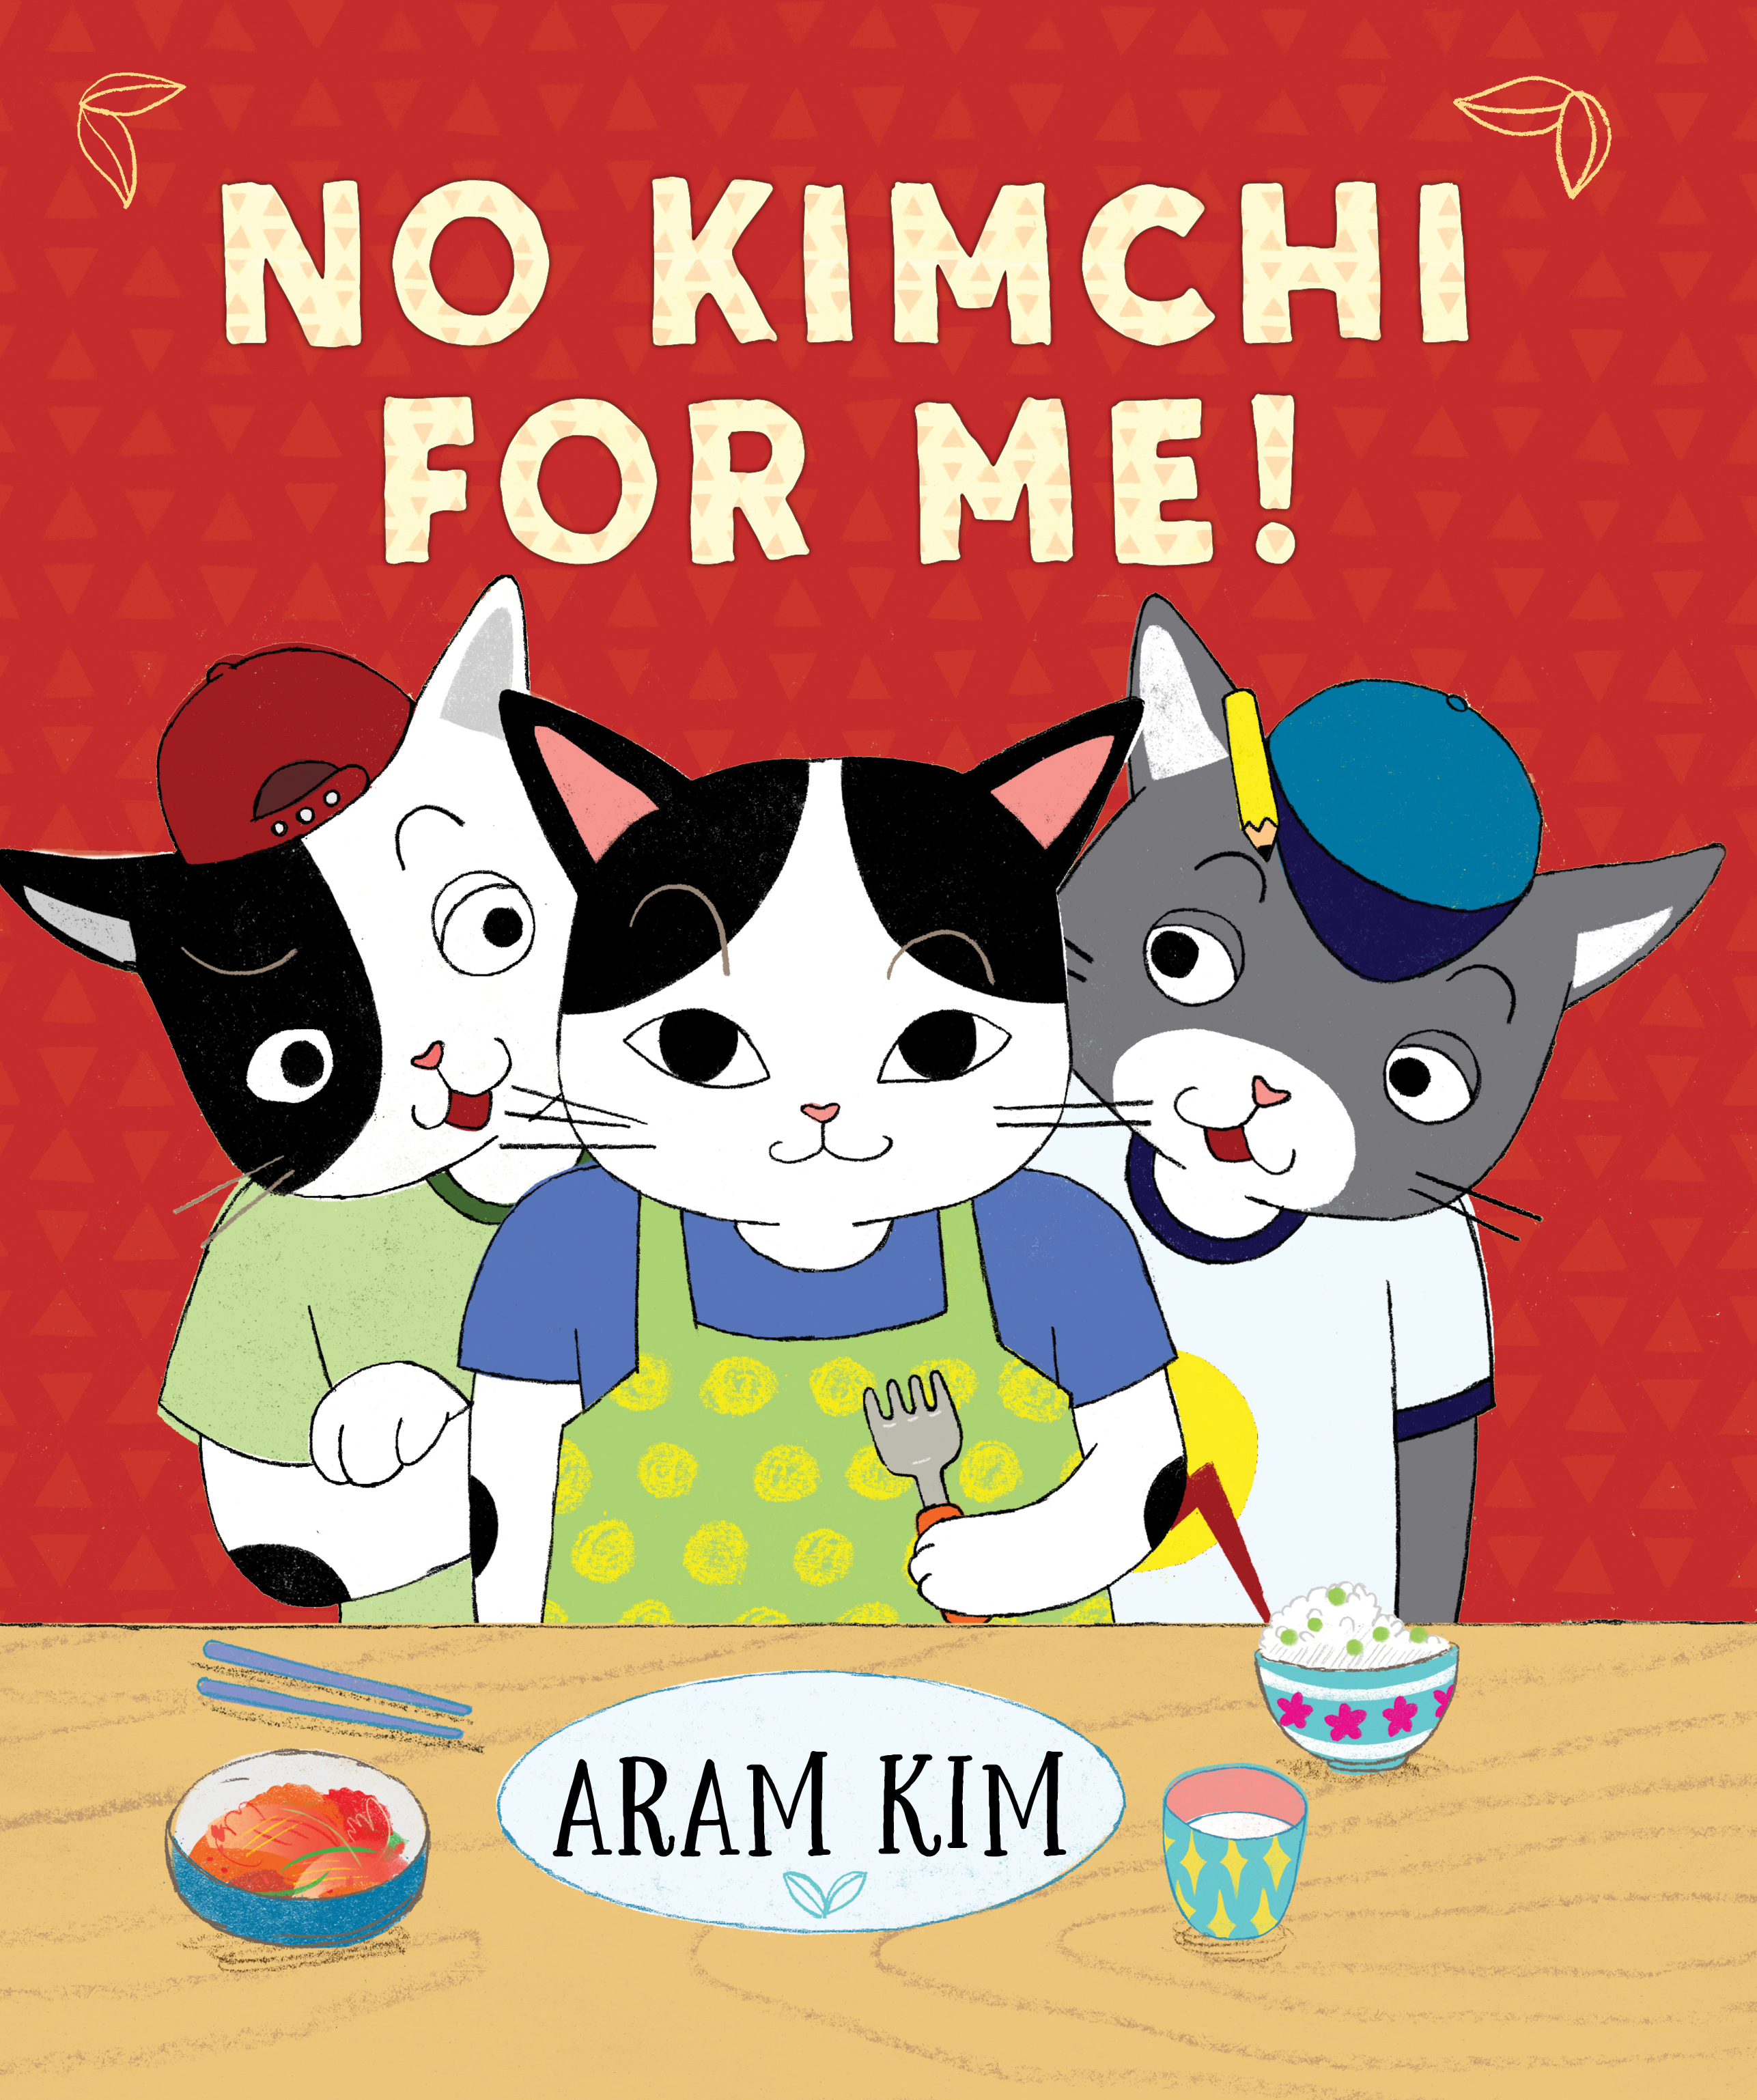 Sunday Story Time with Aram Kim (Author & Illustrator of No Kimchi for Me!)